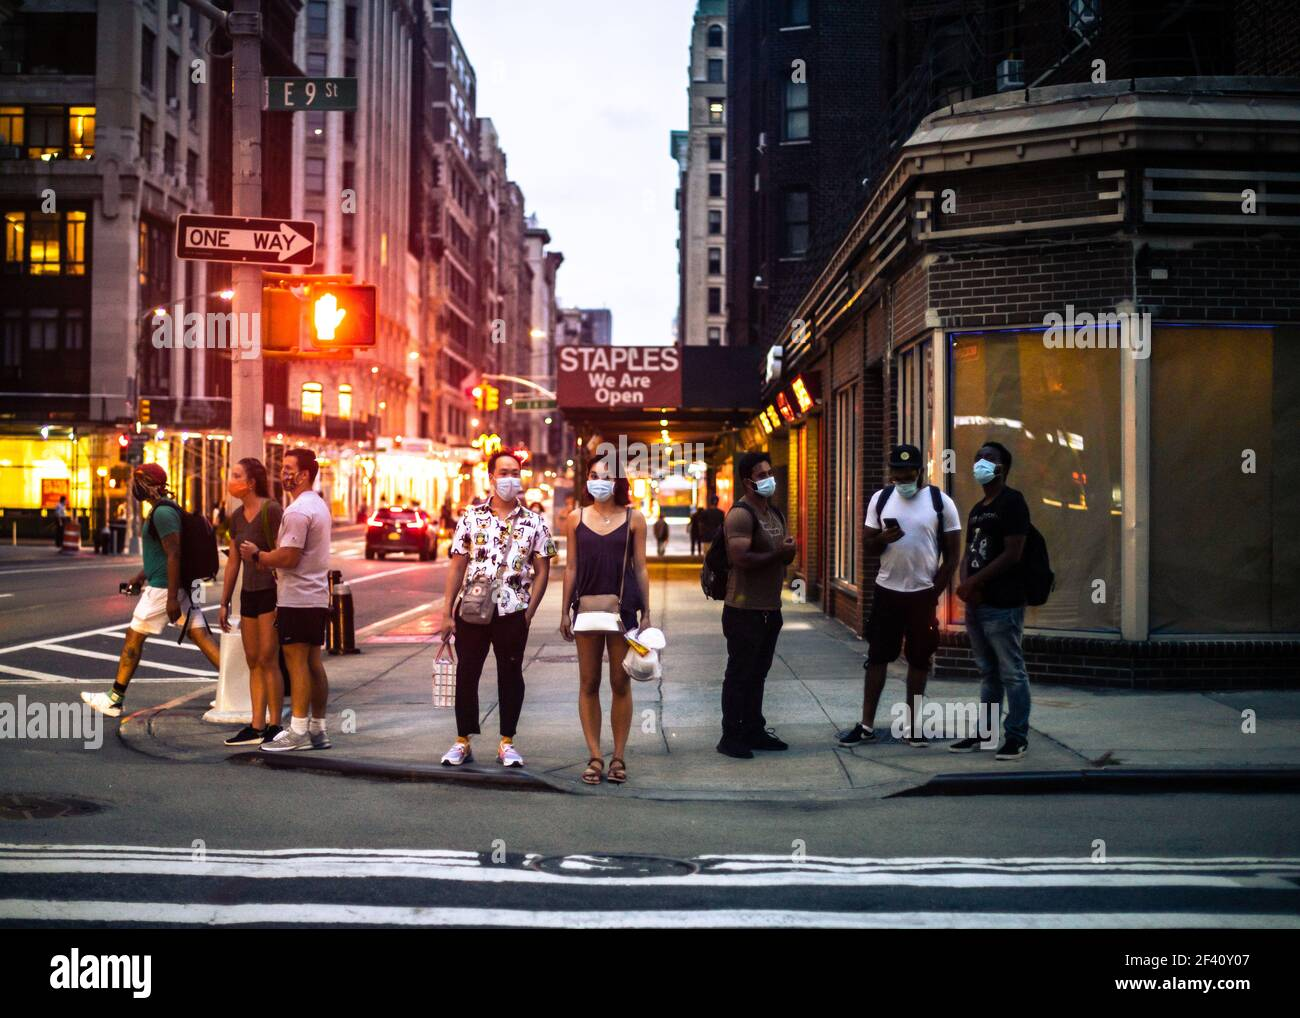 New York City, New York - August 18, 2020:  Street scene from Manhattan on a summer evening of people waiting to cross the street wearing masks during Stock Photo